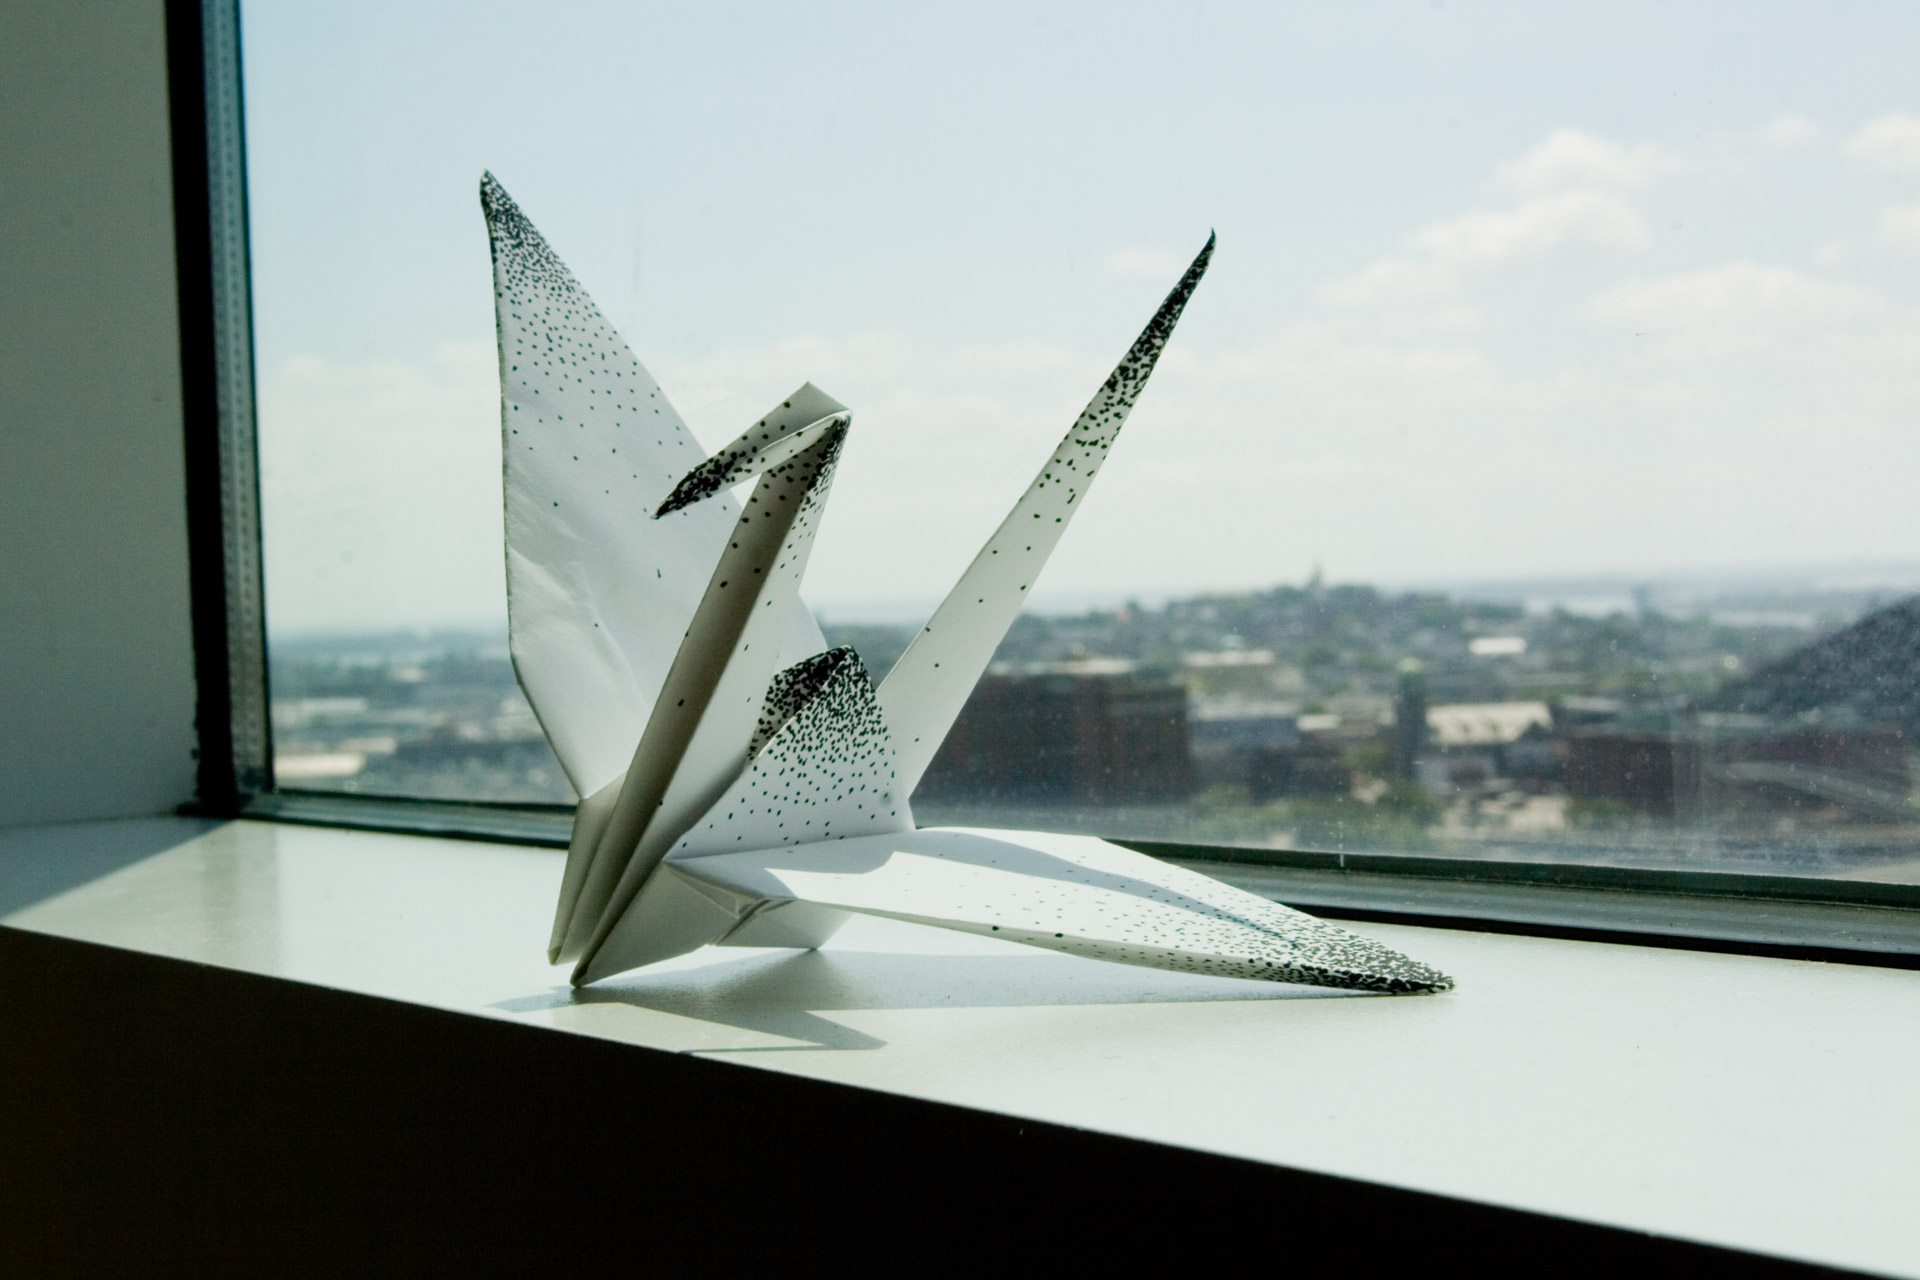 A paper crane with polka dots sitting on a window sill